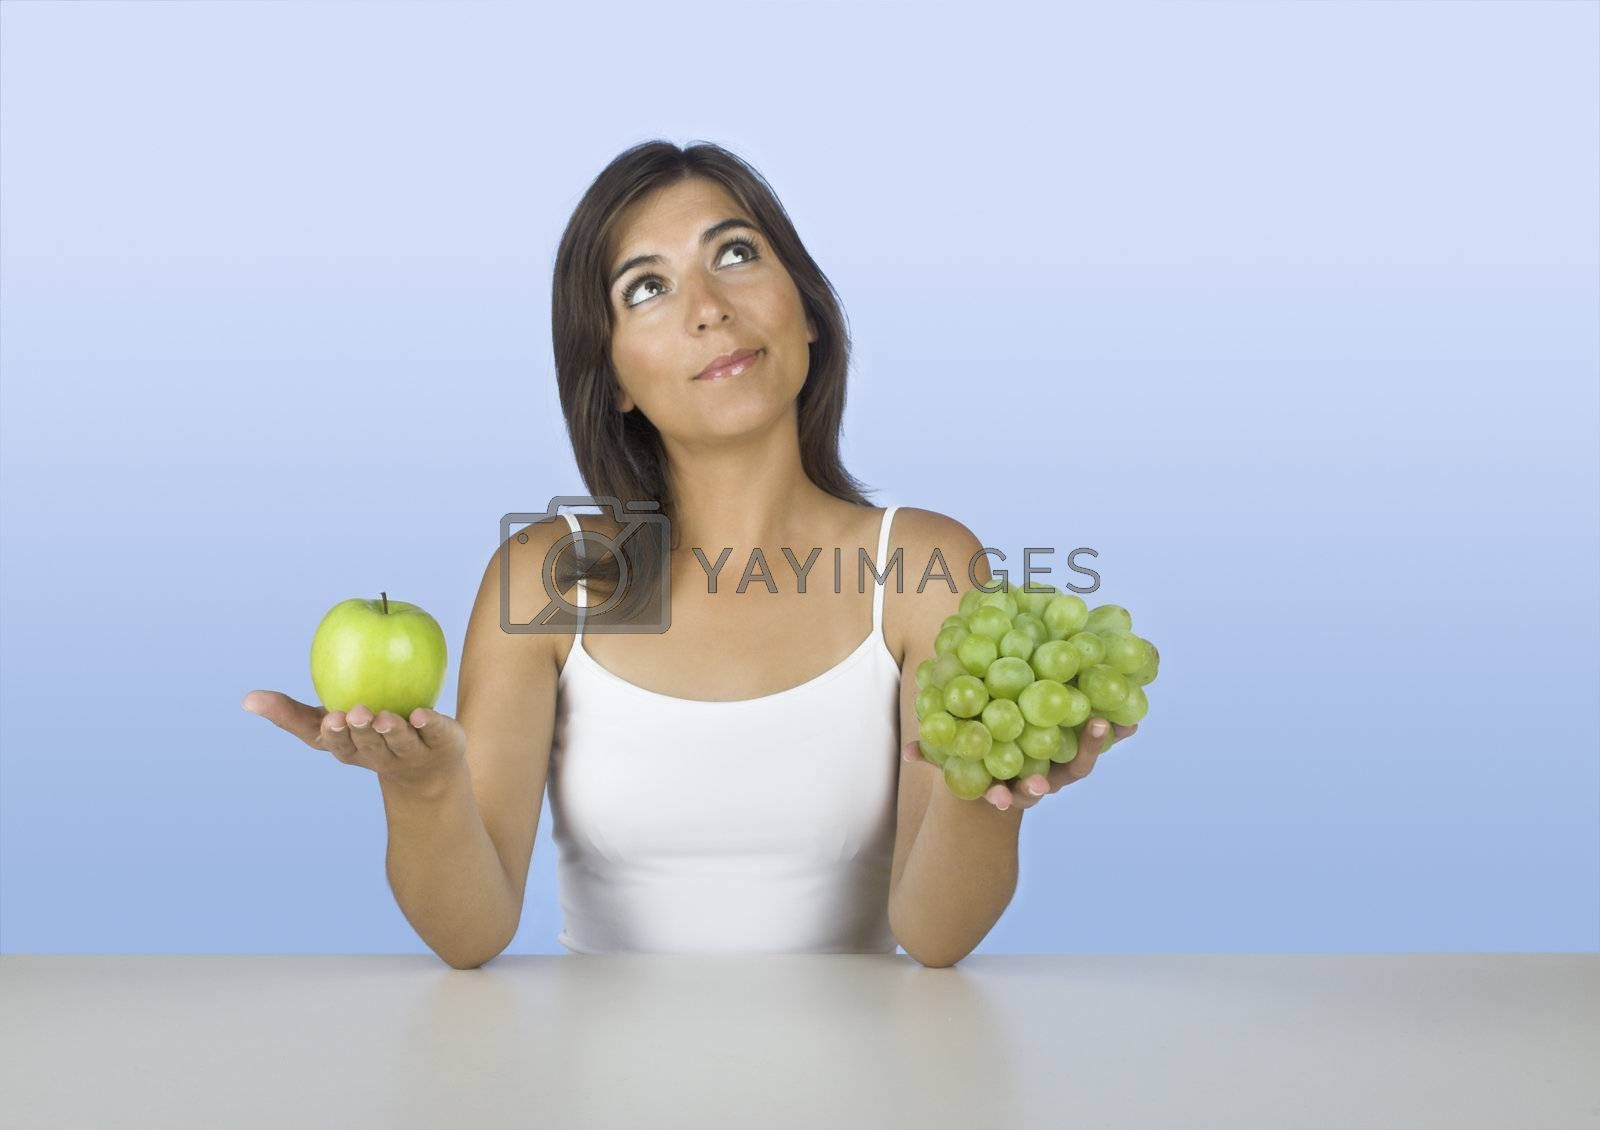 Beautiful young woman thinking on what to eat